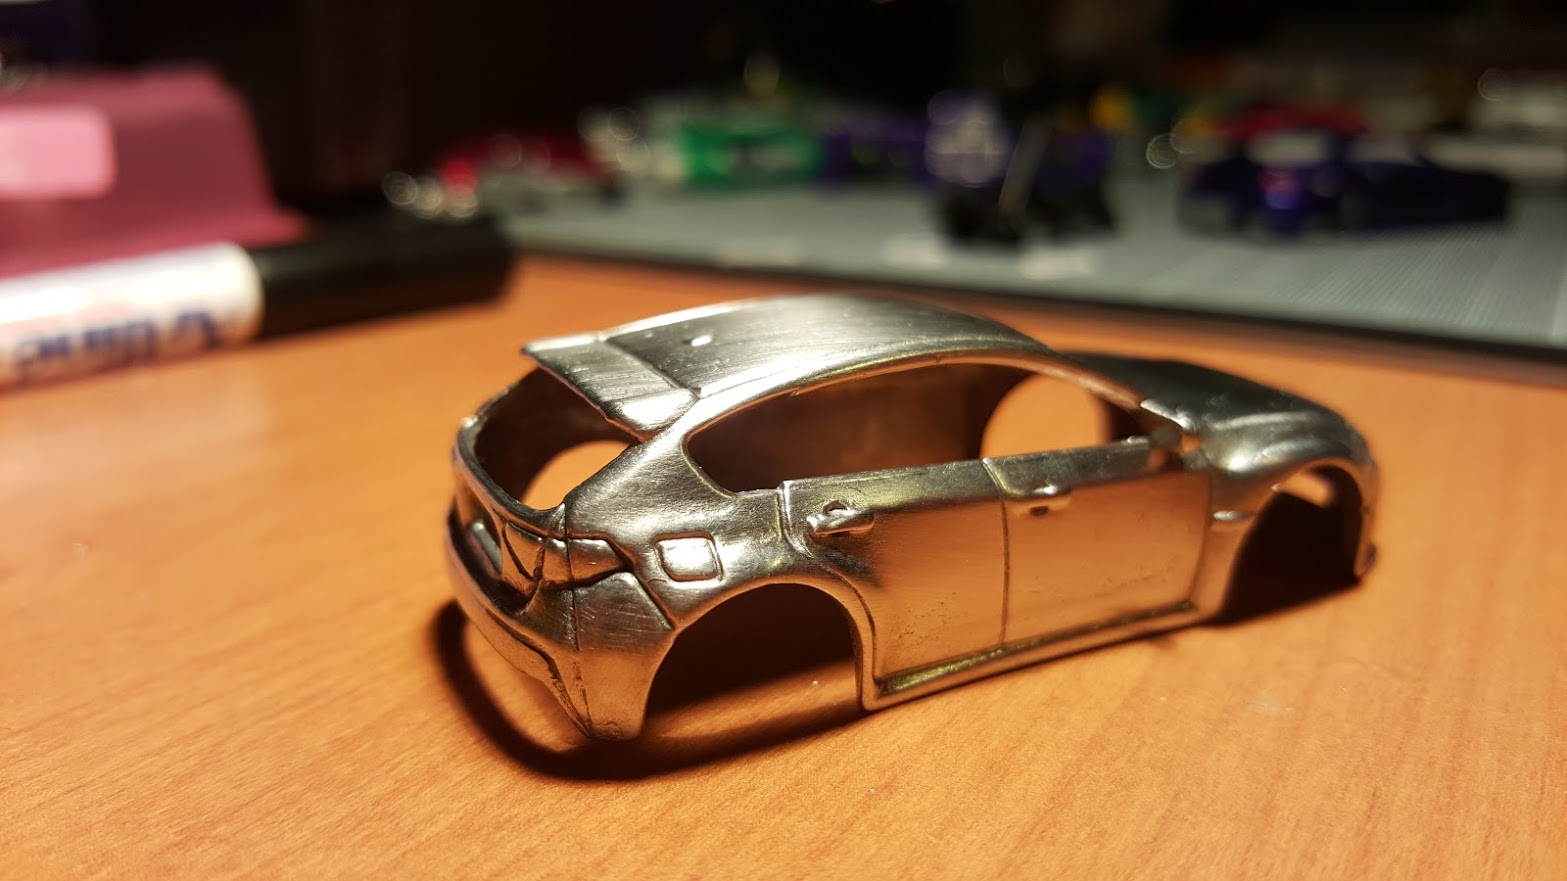 How To Strip Hot Wheels Car Paint